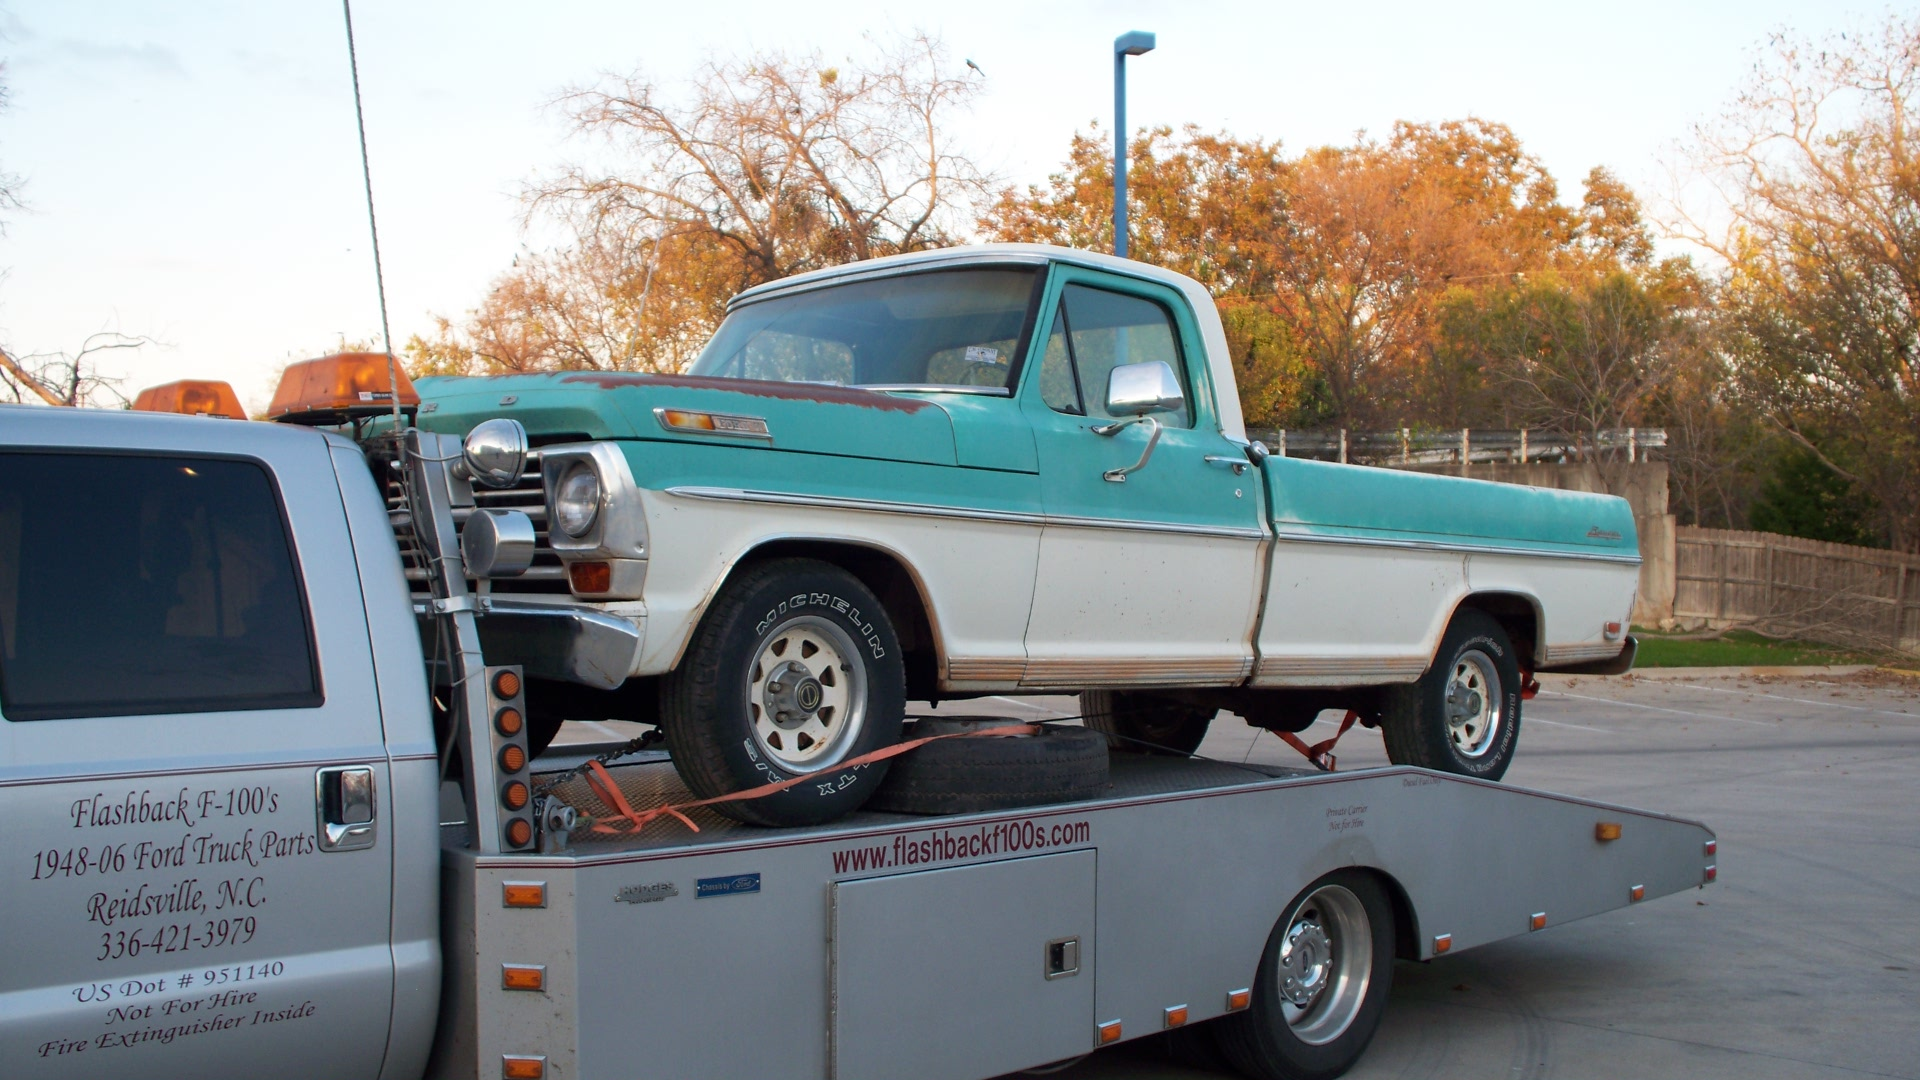 Flashback F10039s New Arrivals Of Whole Trucks Parts Or 1948 Ford Short Bed 1969 True Ranger With Bucket Seats